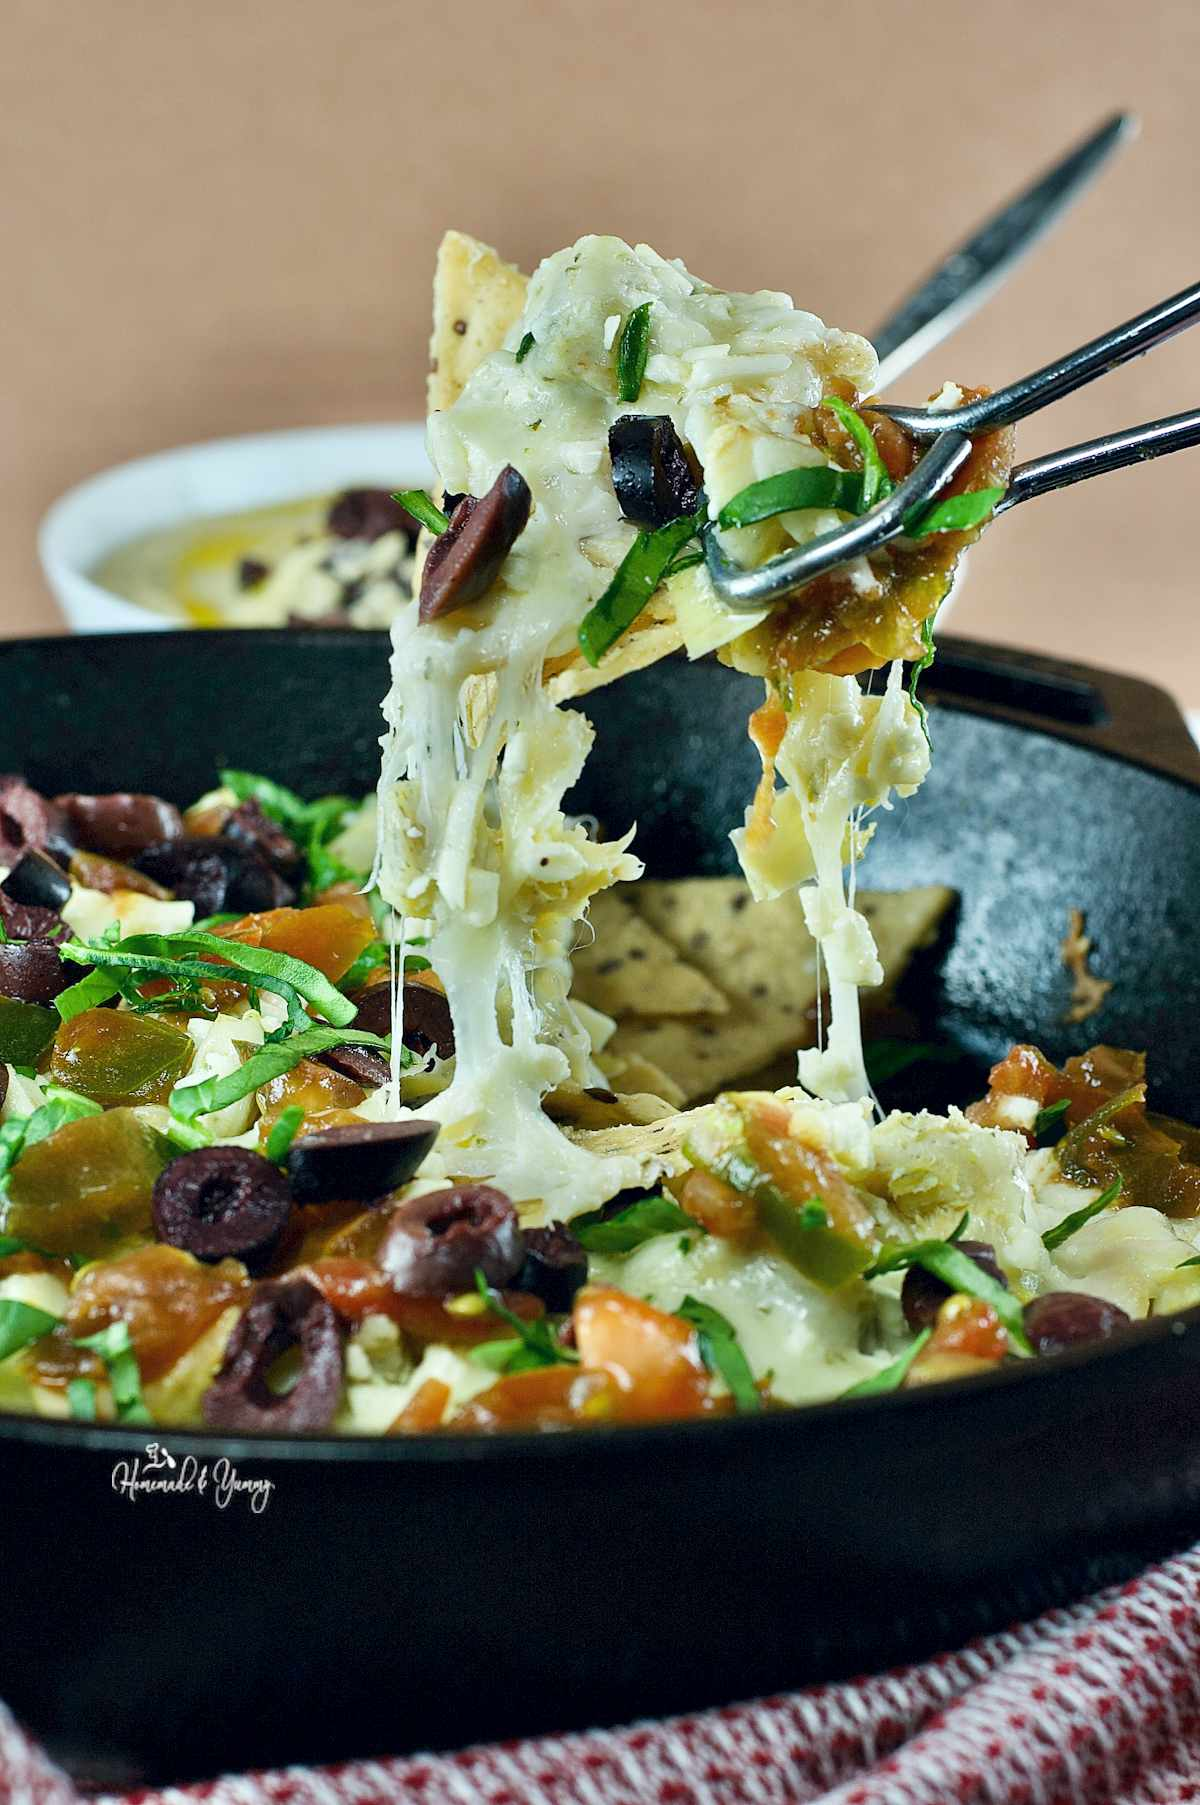 A pan Greek nachos, with a bowl of hummus in the background.